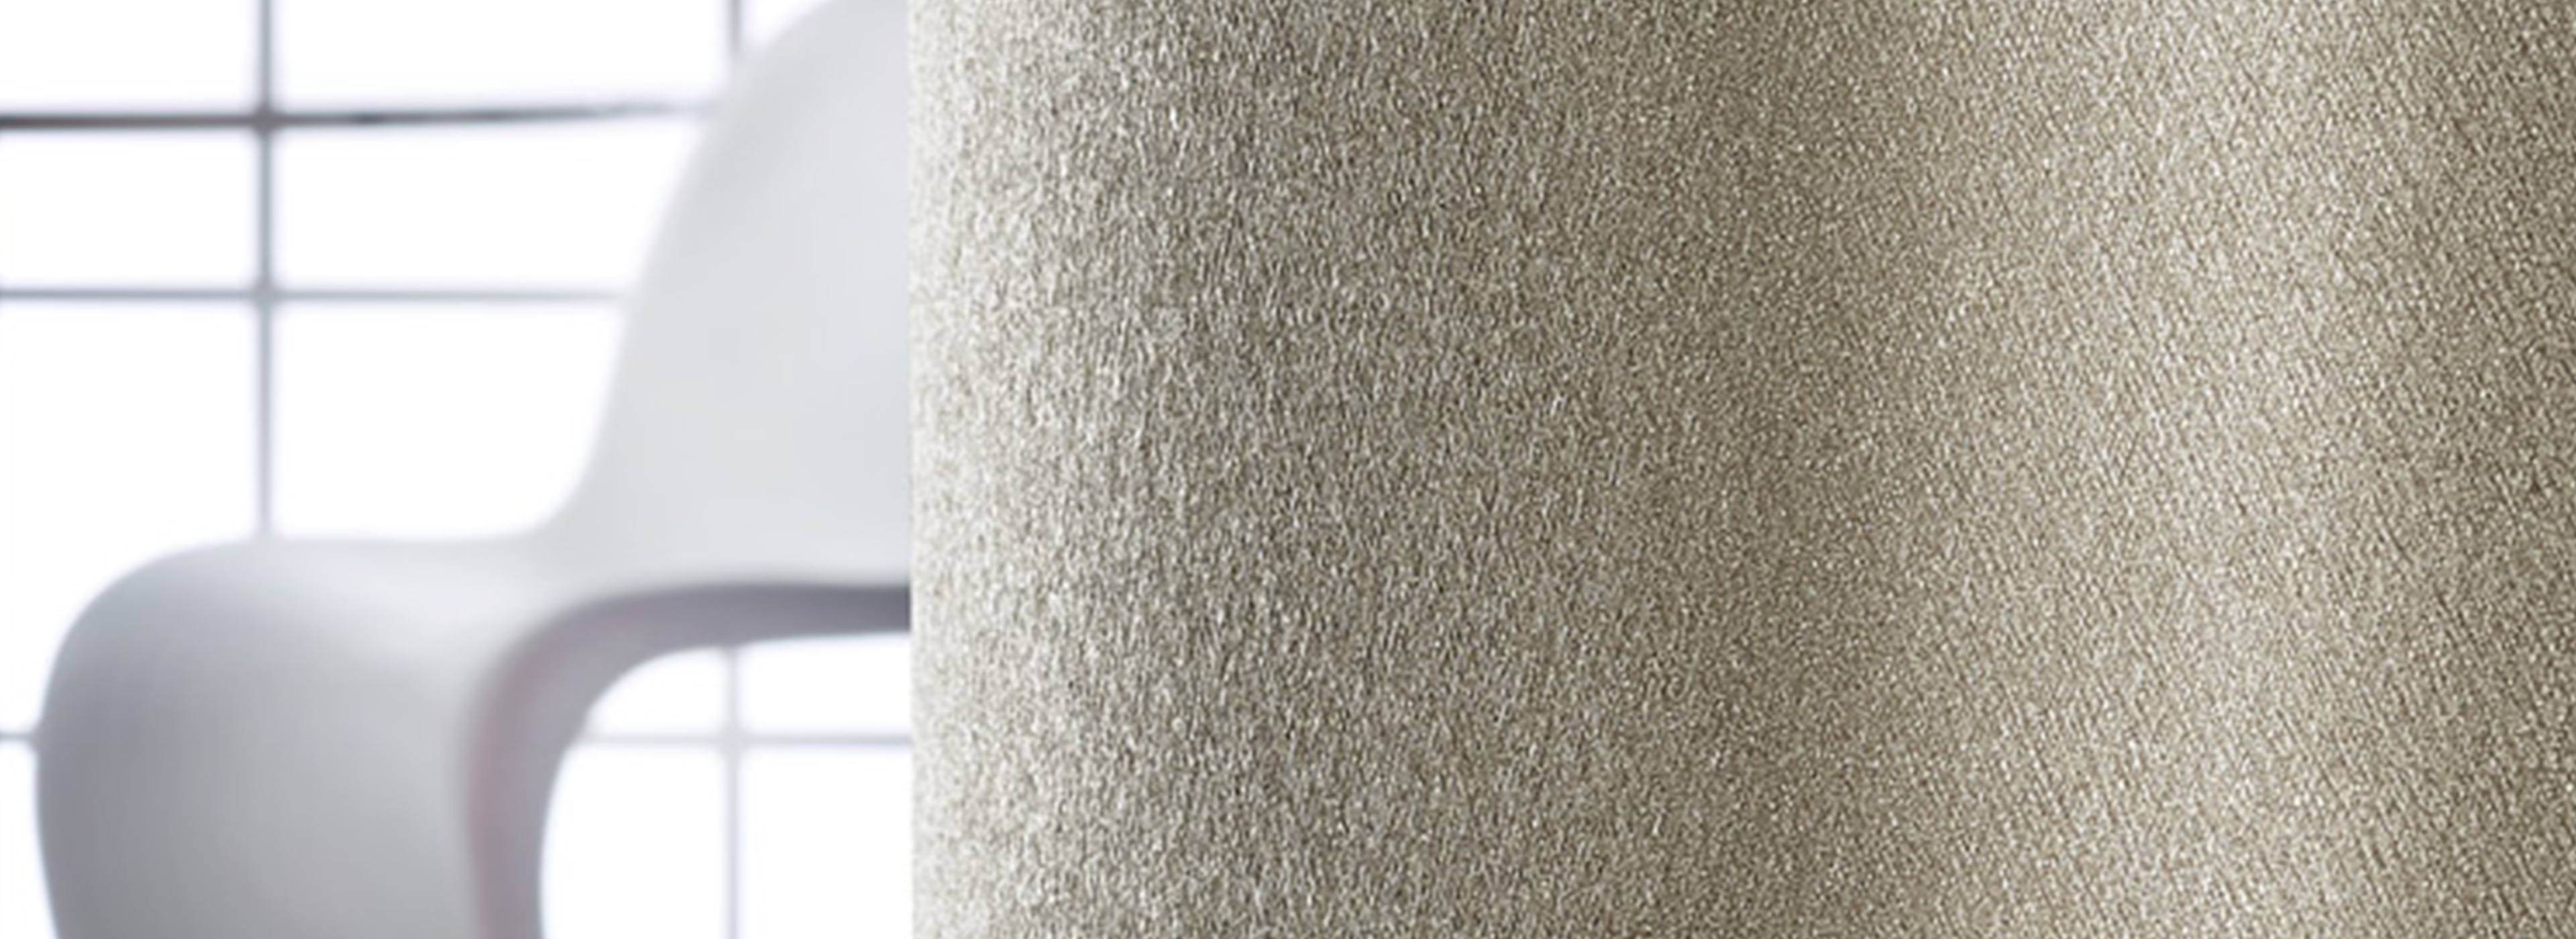 Matisse Texture Wallcovering from LEVEY Commercial and Architectural Finishes